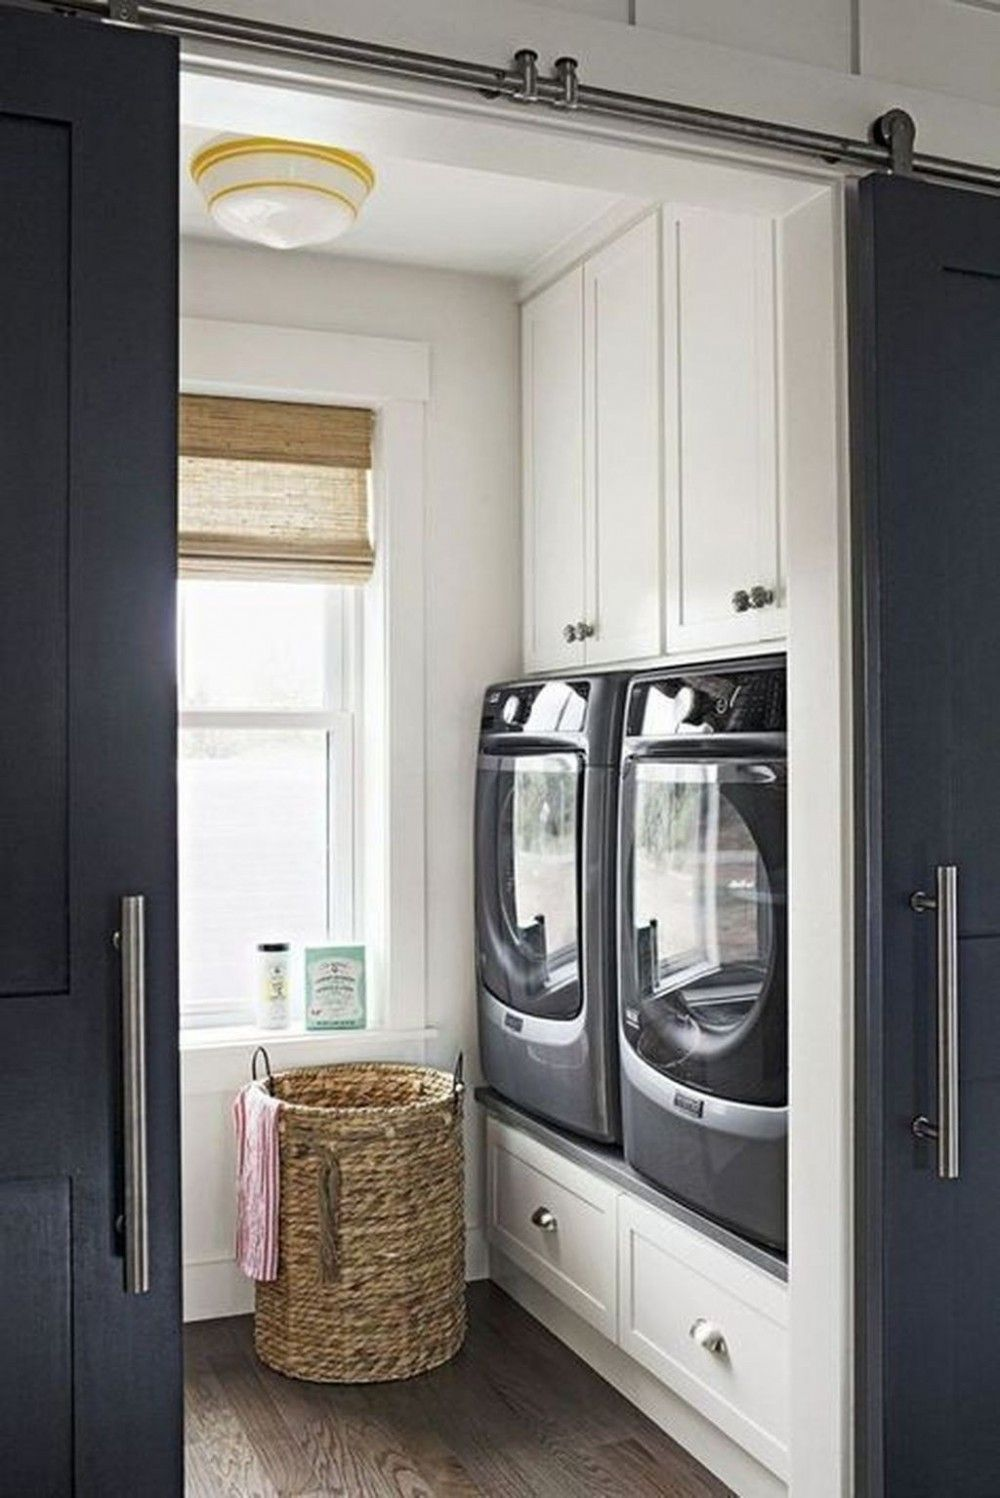 modern interior house design trend for 2020 小さなランドリールーム on extraordinary small laundry room design and decorating ideas modest laundry space id=28556